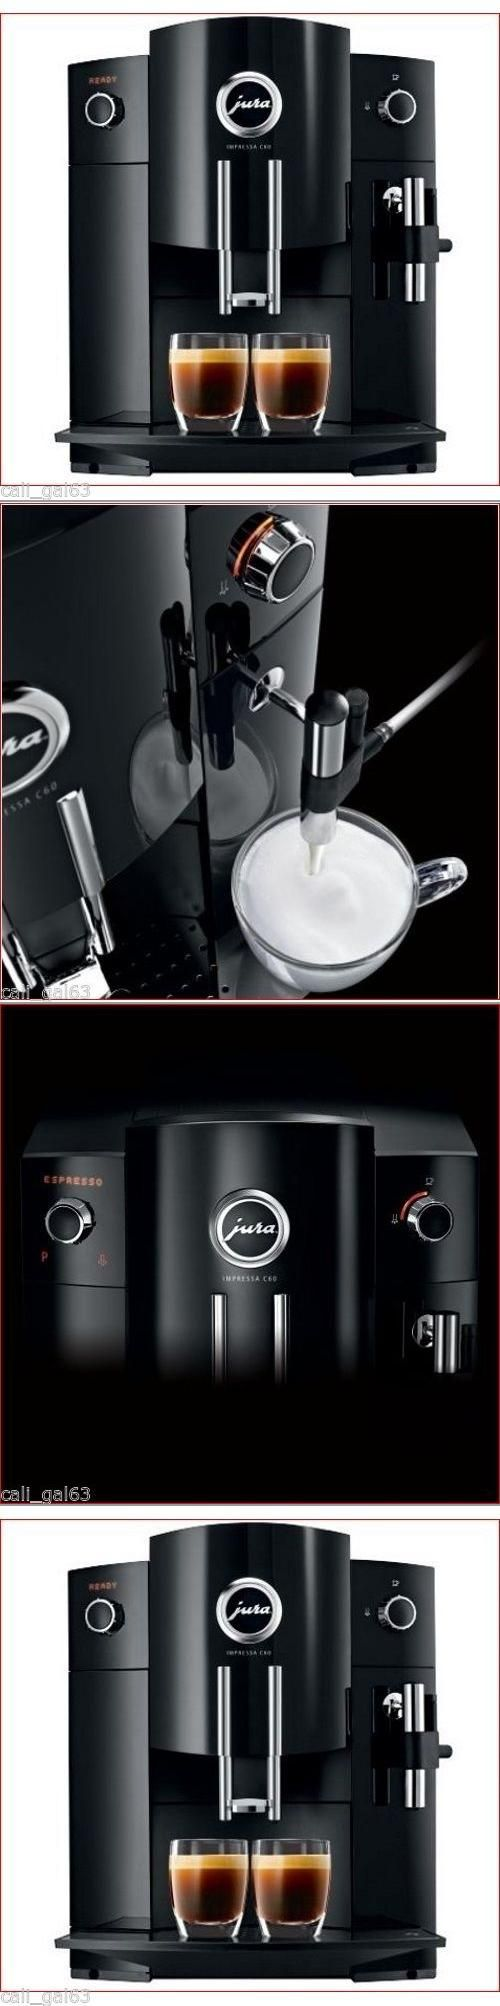 The Jura-Capresso espresso machine is the one to end them all! Dependable, durable, and bringing intense flavor, this electric espresso machine is perfect for even the pickiest of coffee lovers. Whether you are brewing one cup or twenty, you will get the same quality flavor and taste.